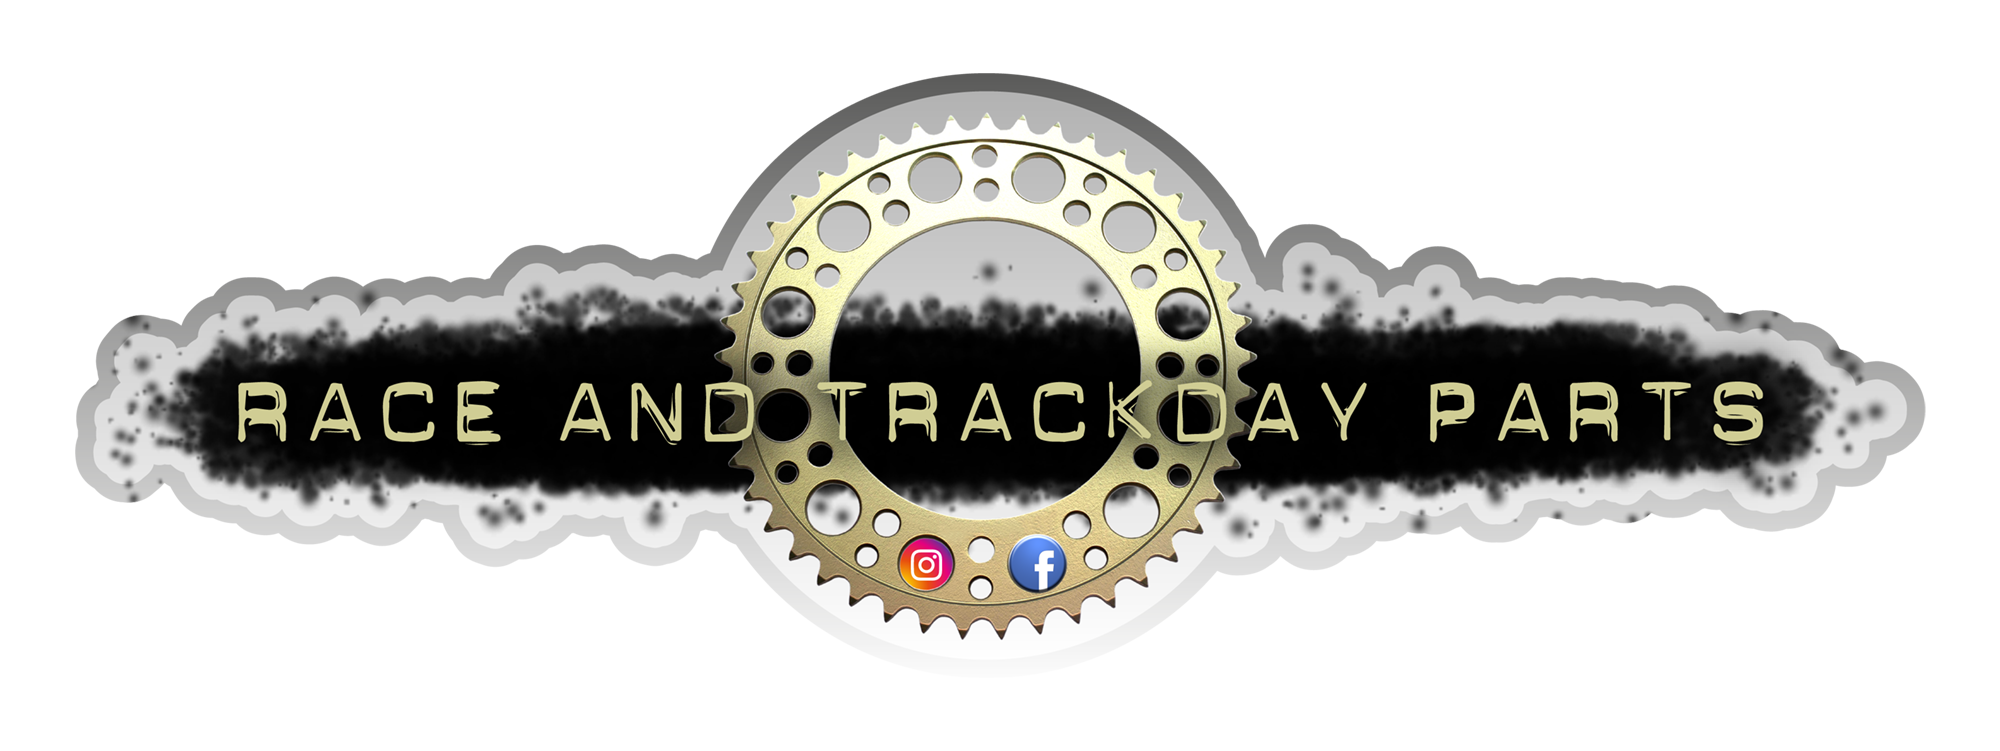 Gift Cards, Gift Card, RATP - Race and Trackday Parts